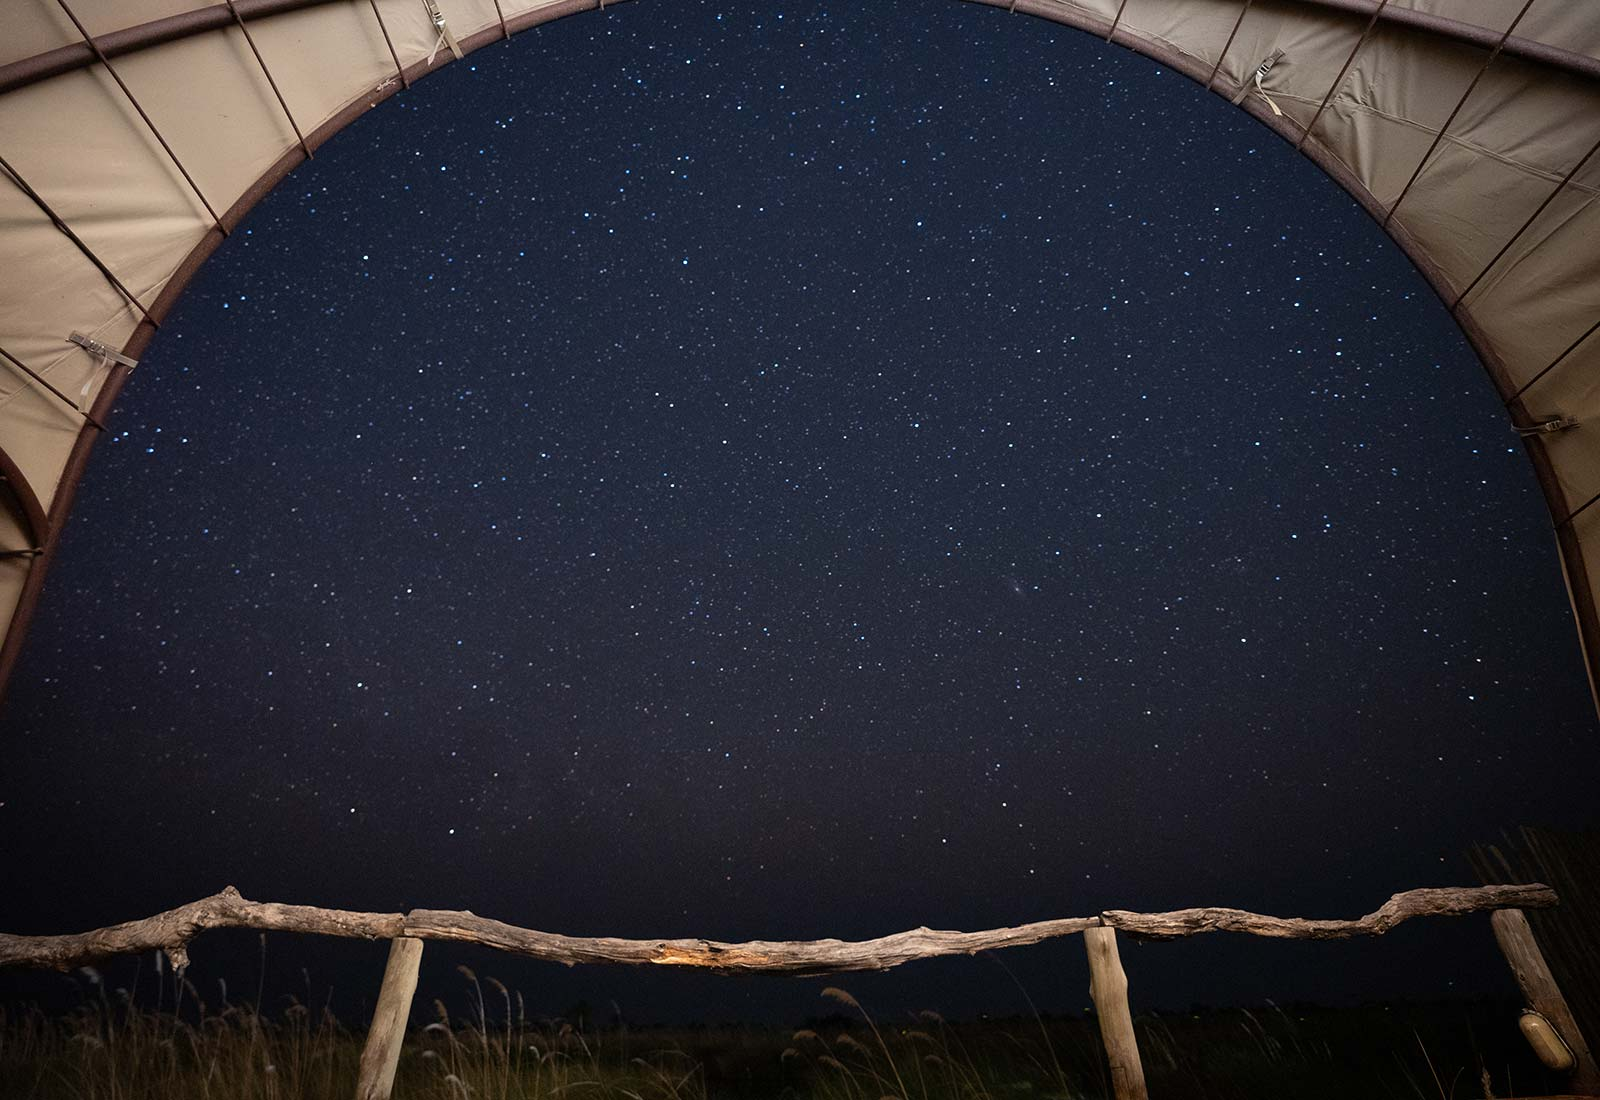 Starry night at the tent in Botswana, Africa. An owl and African sunsets